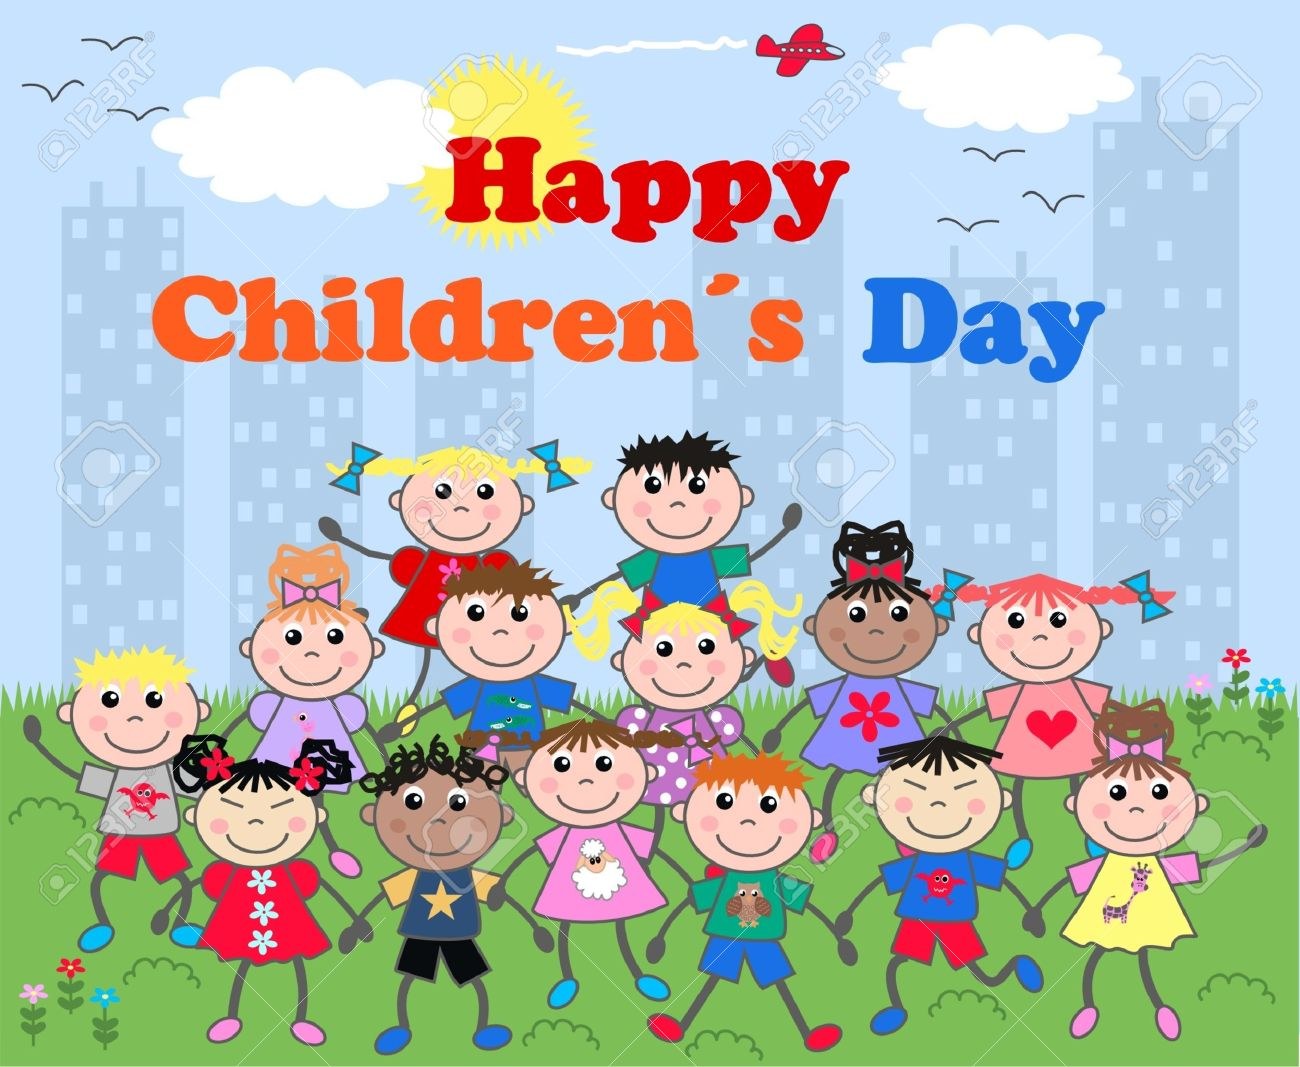 What is the significance of children's day?